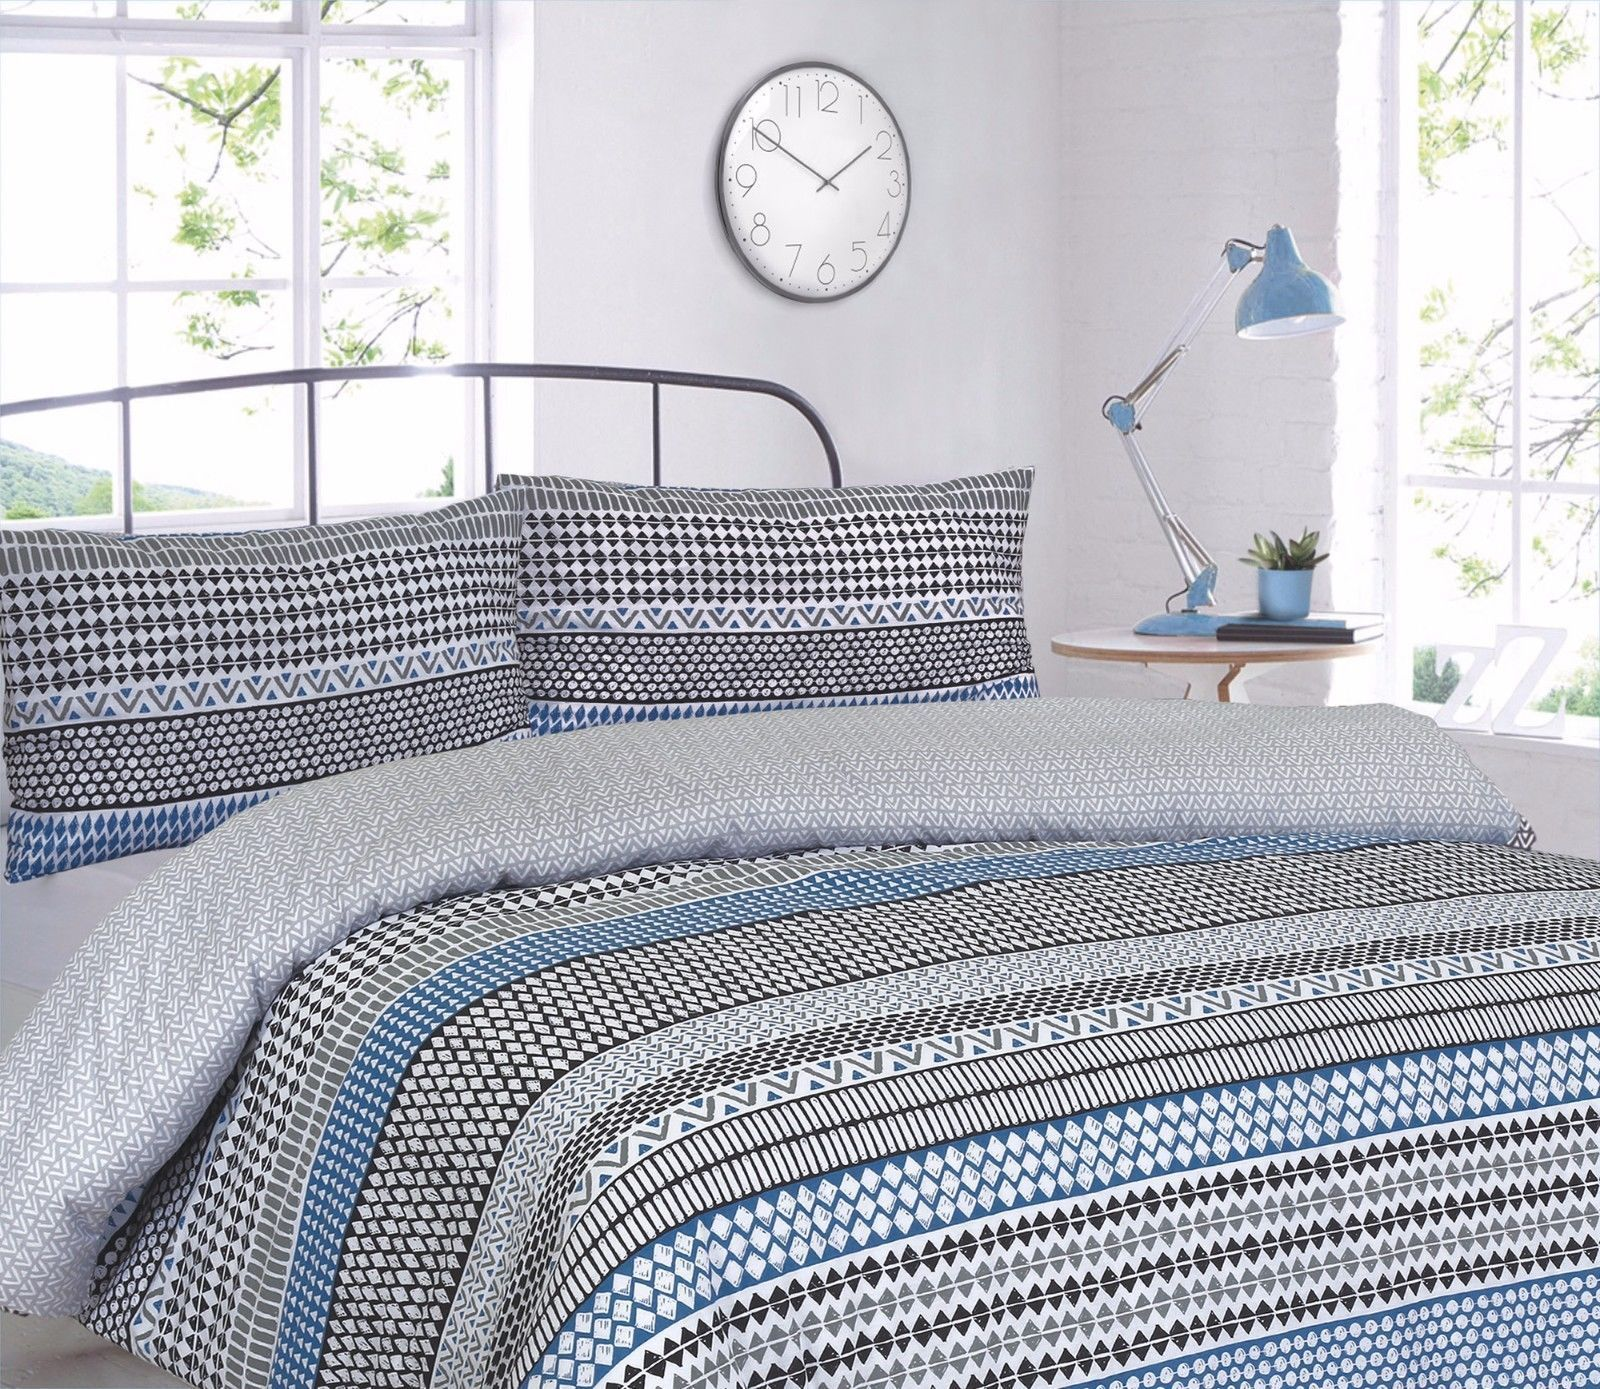 Artisan Duvet Cover Reversible Quilt Bed Set with Pillowcases Single Double King